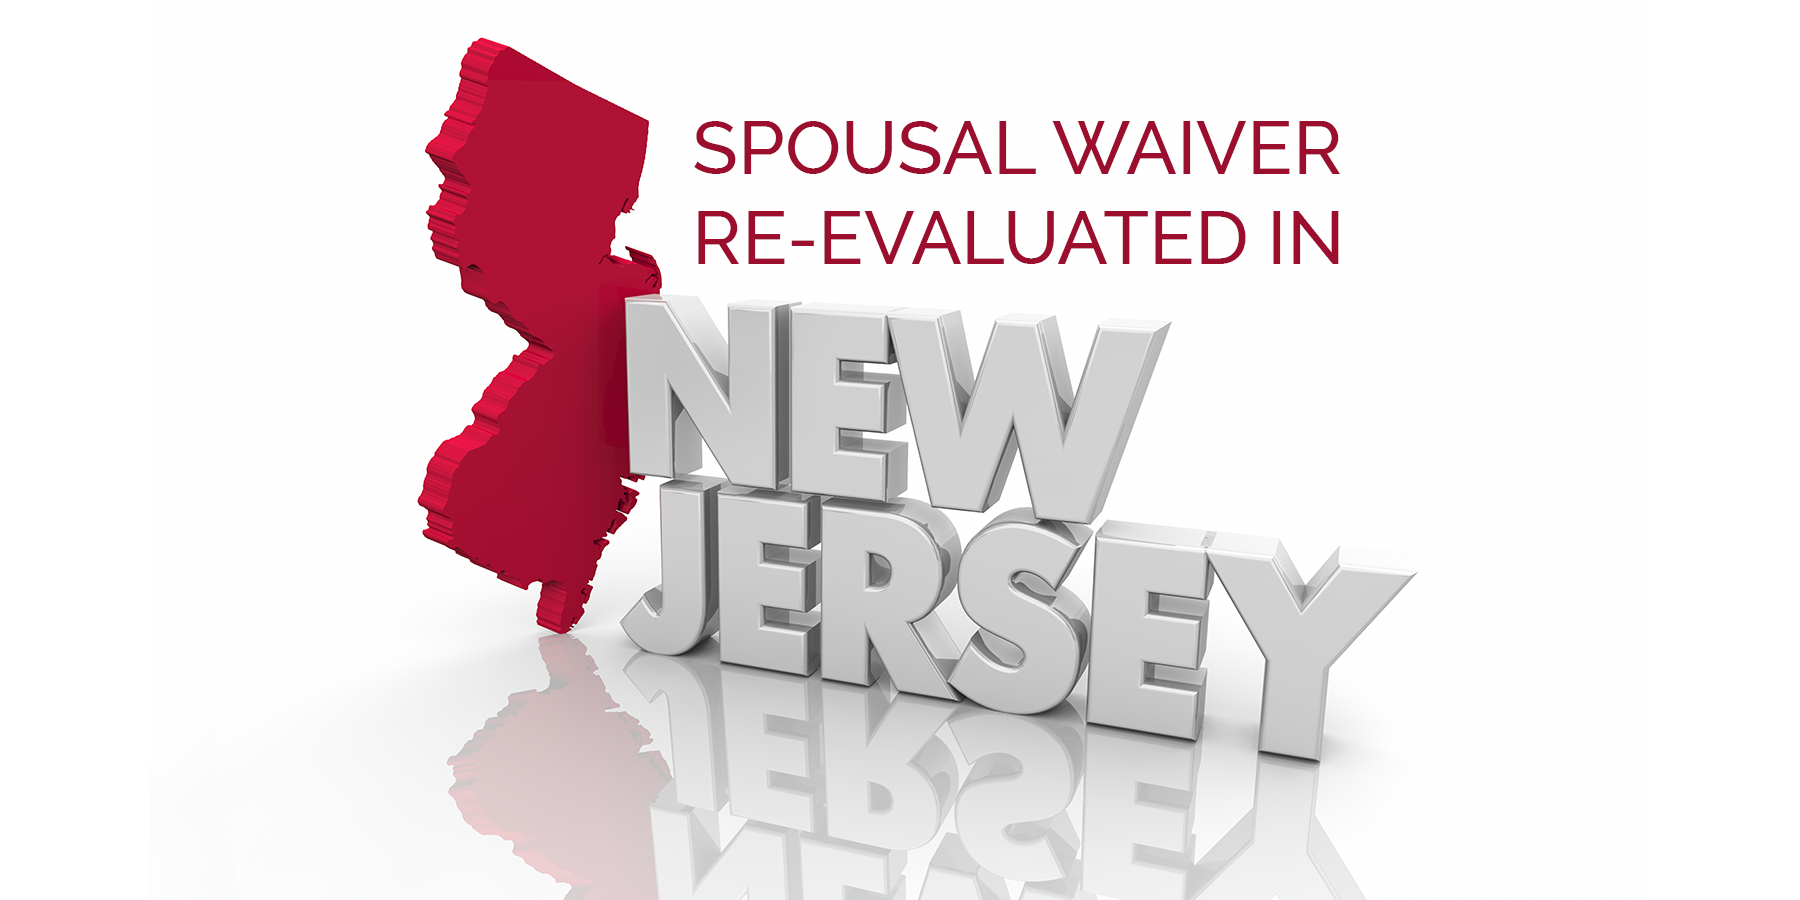 Spousal-Waiver-Re-evaluated-in-New-Jersey